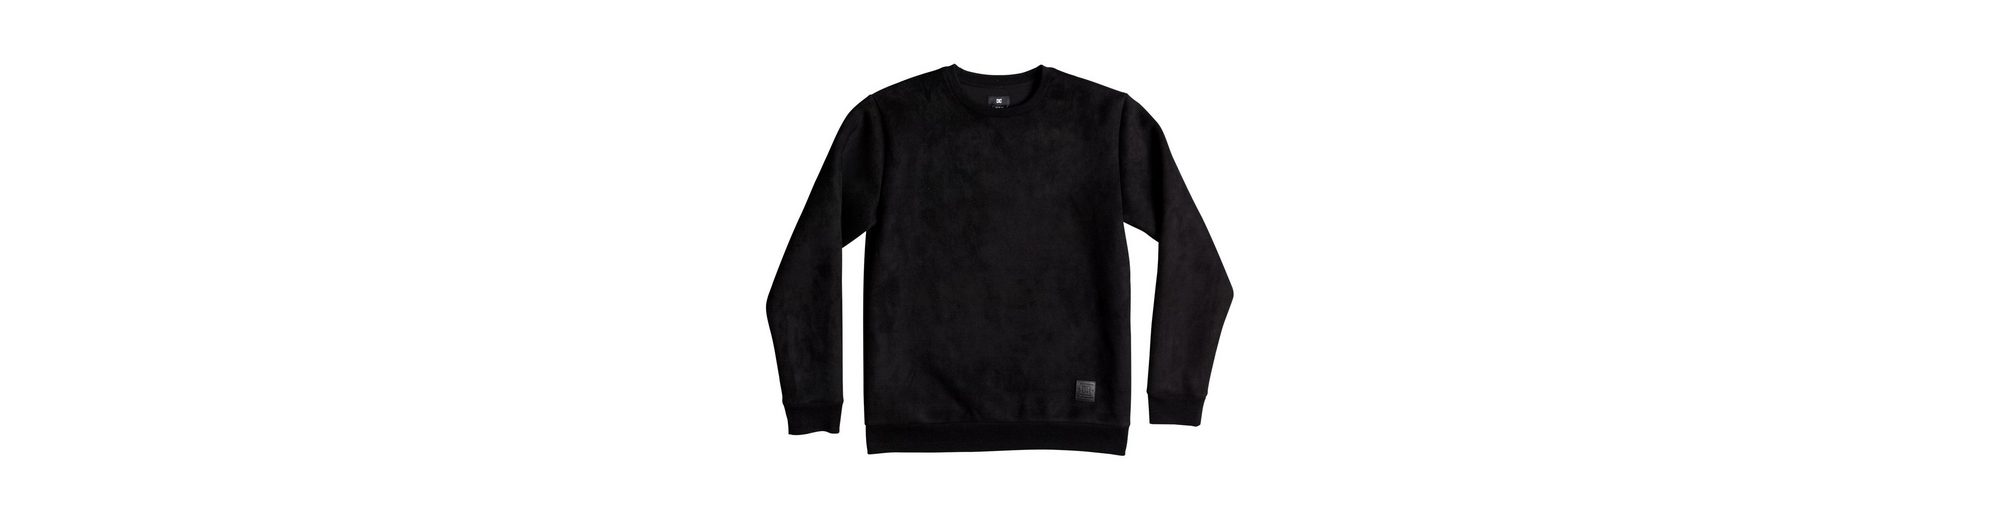 DC Shoes Kunst-Wildleder Sweatshirt Atchison Amazon Kaufen qC5kwq5wm